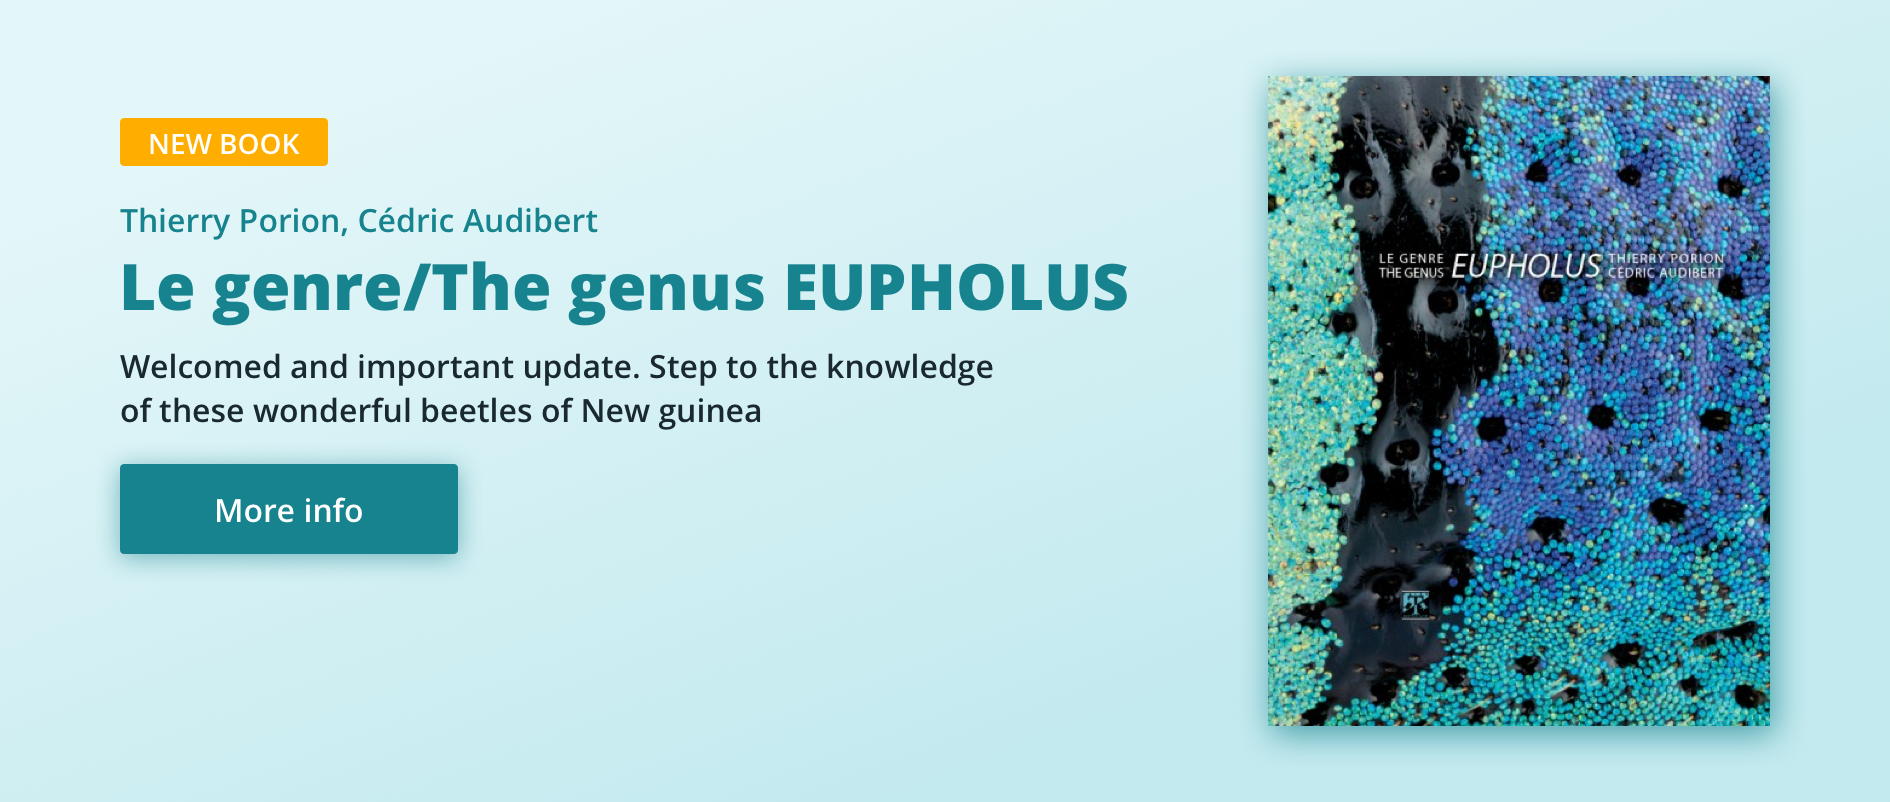 Le genre/The genus EUPHOLUS